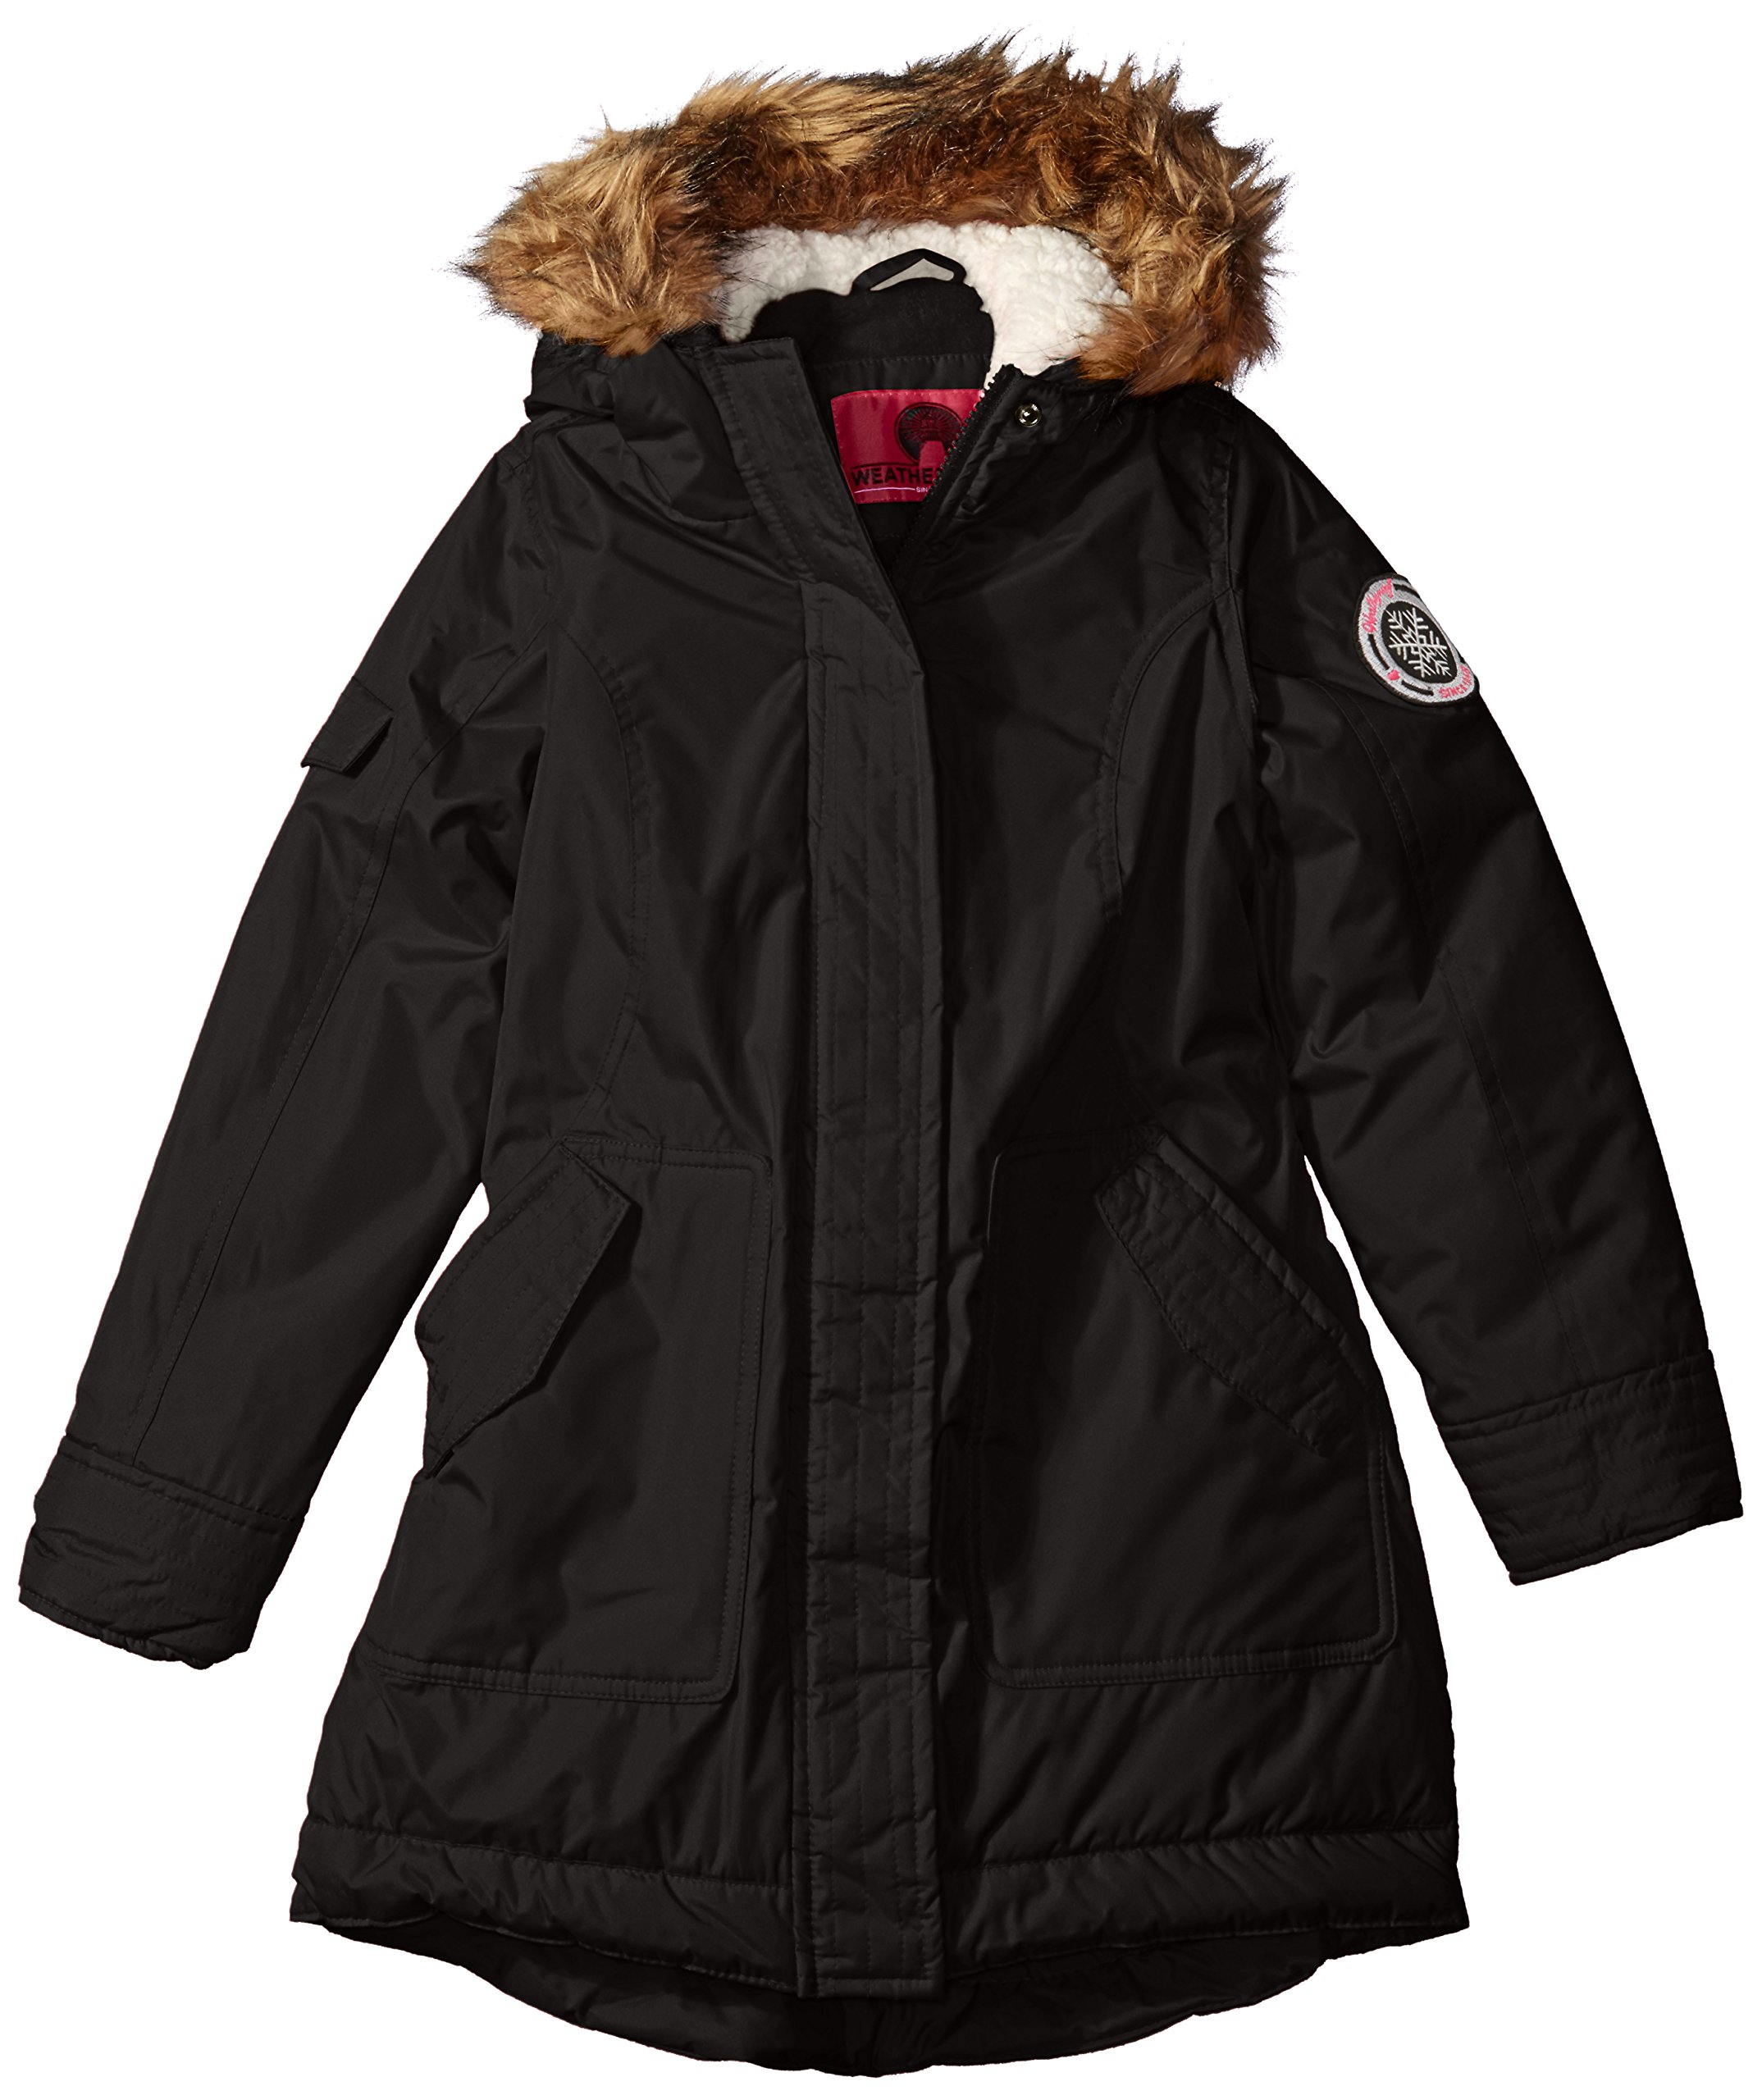 Weatherproof Big Girls' Fashion Outerwear Jacket (More Styles Available), Black D, 7/8